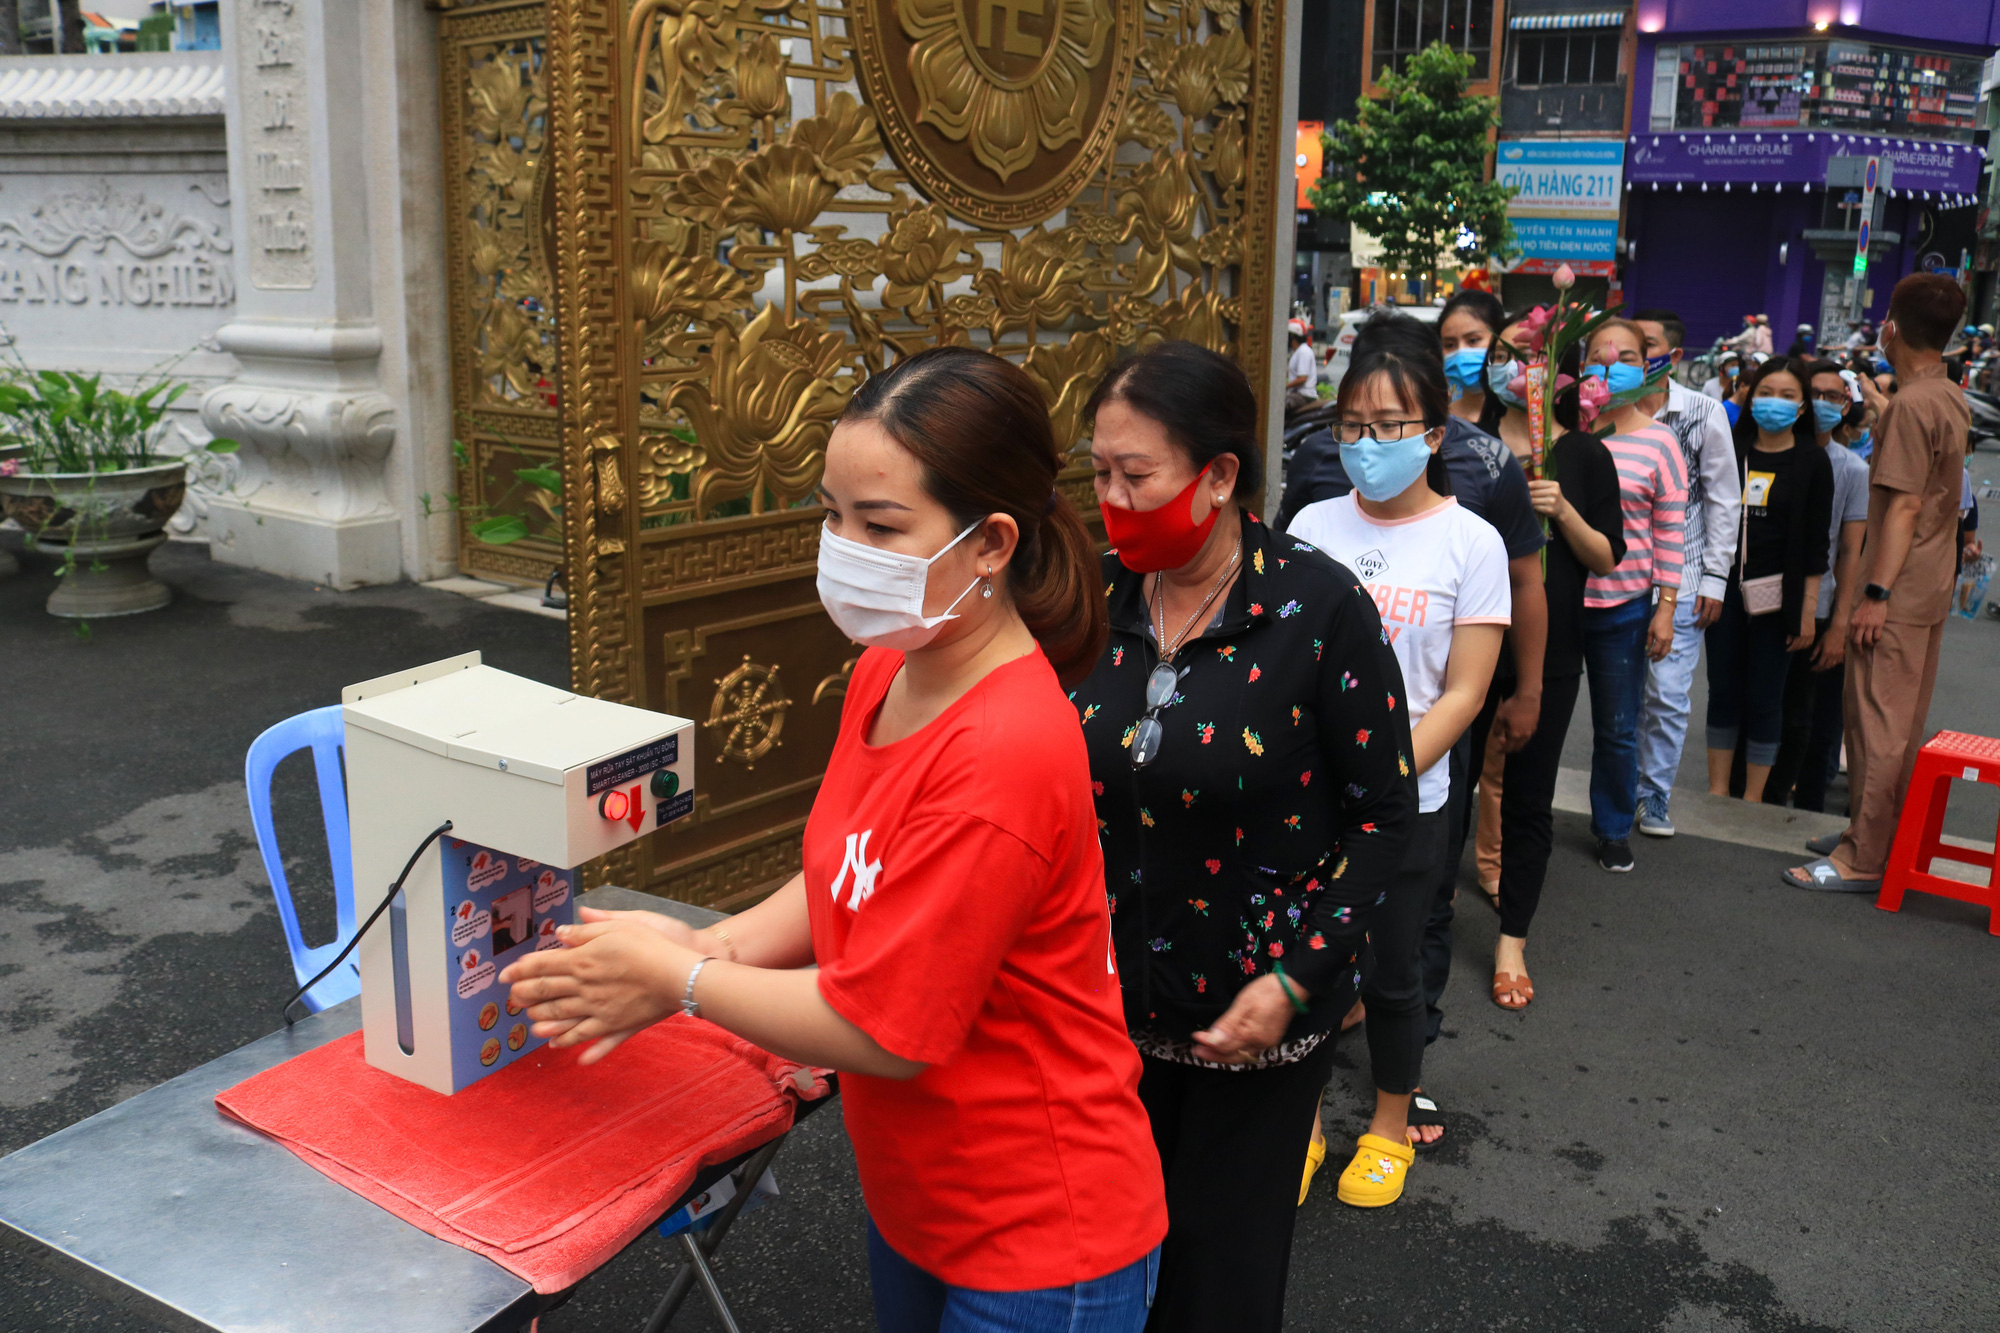 People line up at a hand sanitizer dispenser before entering Viet Nam Quoc Tu Pagoda amid the novel coronavirus disease (COVID-19) outbreak on Vu Lan Festival in Ho Chi Minh City, Vietnam, September 2, 2020. Photo: Nhat Thinh / Tuoi Tre